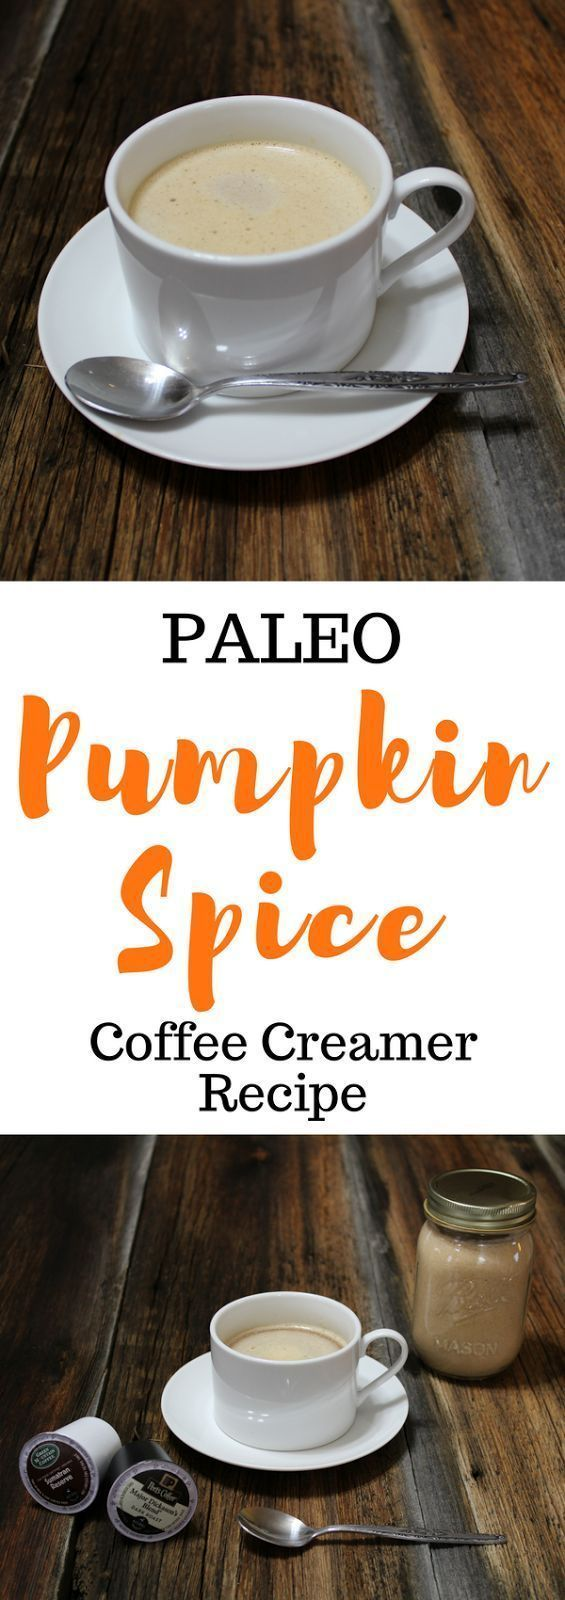 A clean pumpkin spice latte! This coffee creamer recipe is paleo and vegan with Whole 30, low carb, keto, and lighter options given! So good.